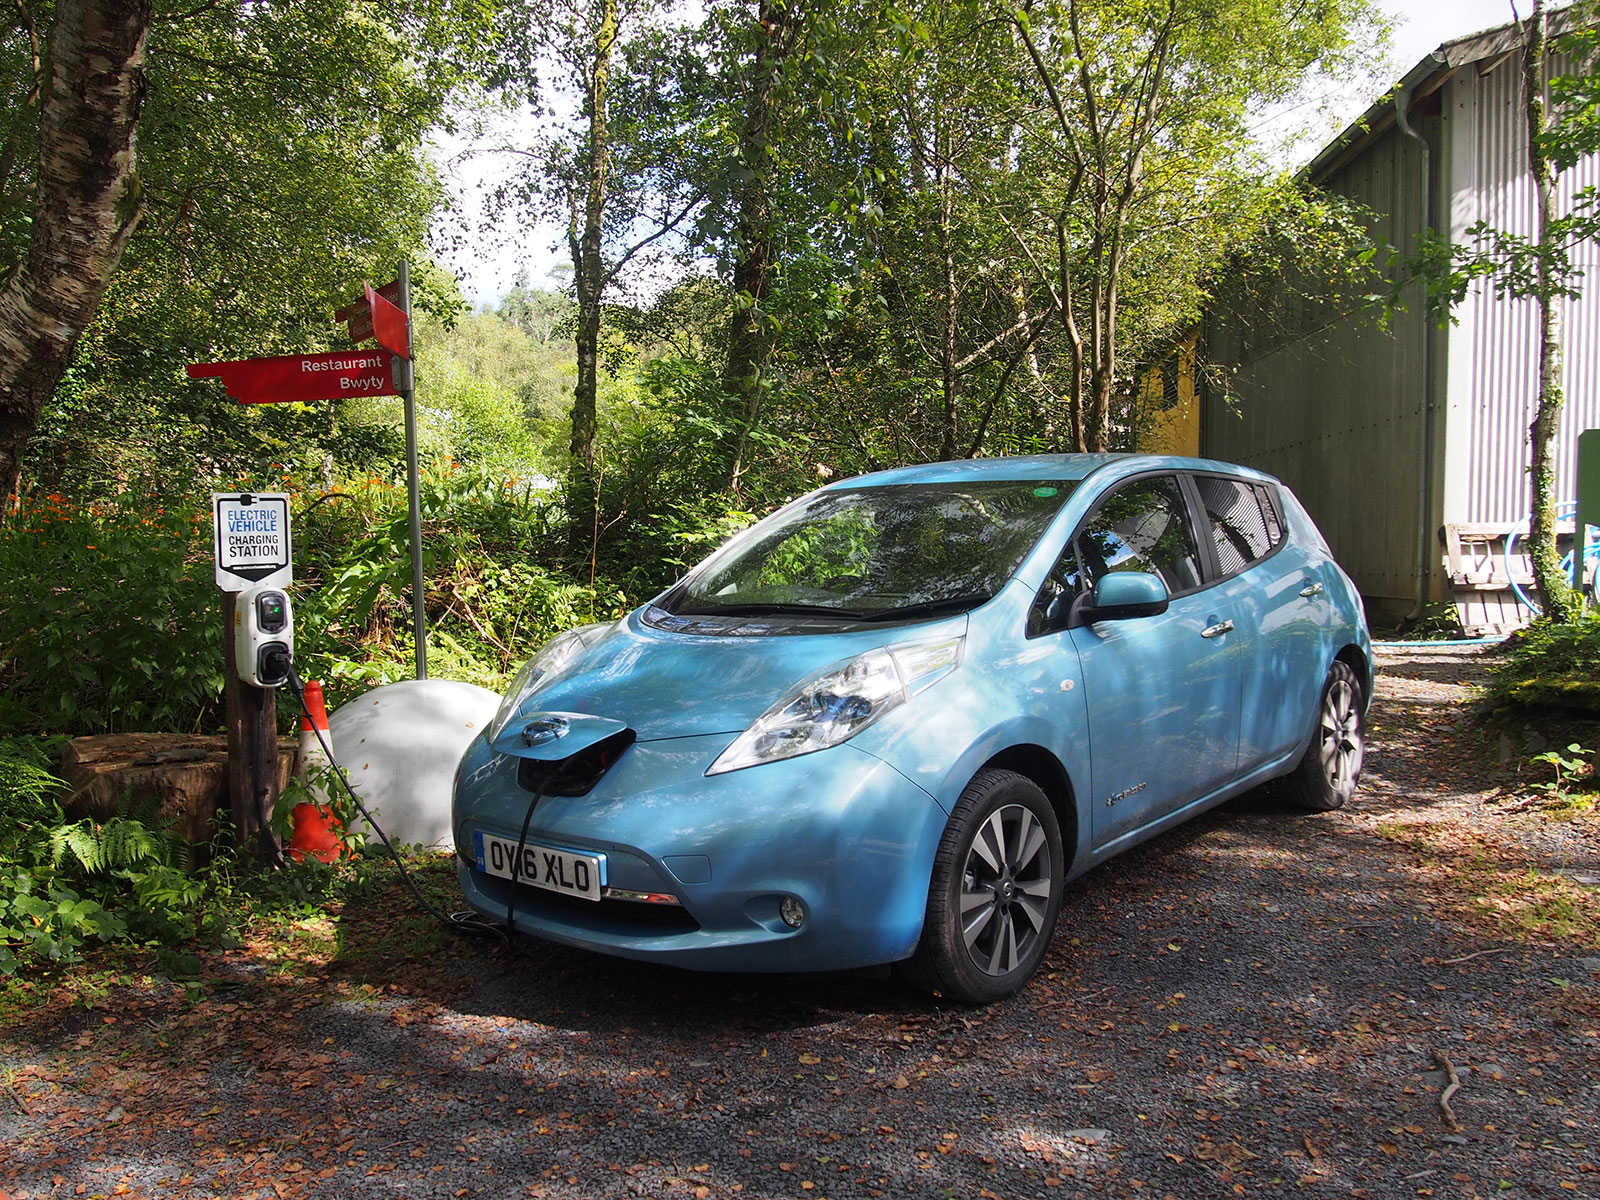 Nissan Leaf 30kWh in Wales 2016 - Centre for Alternative Technology (CAT)